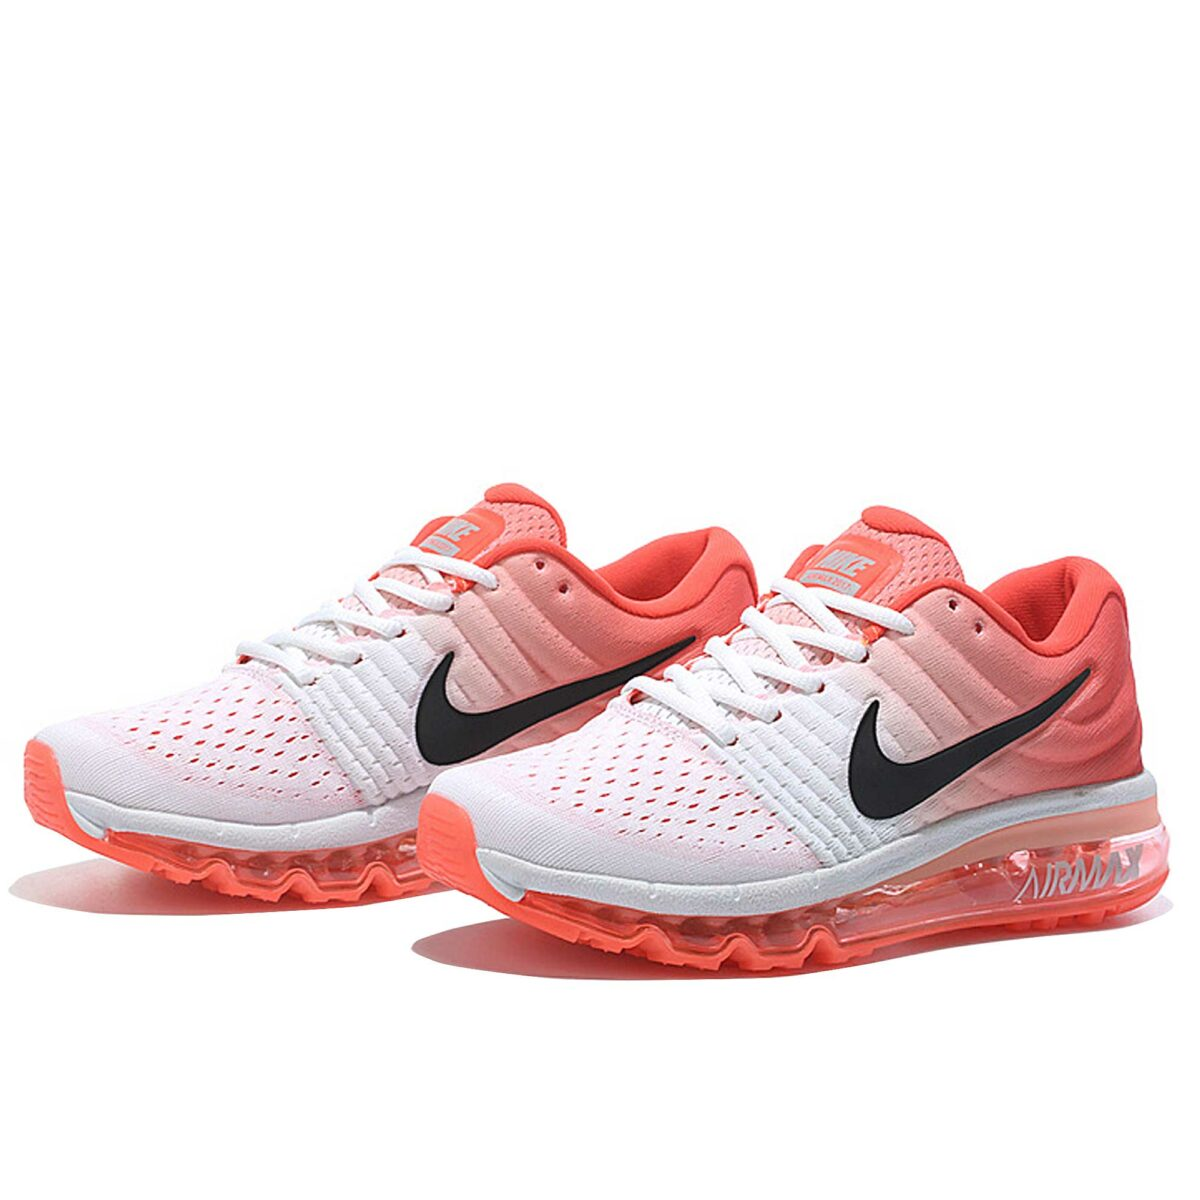 nike air max 2017 white peach 8495601-106 купить